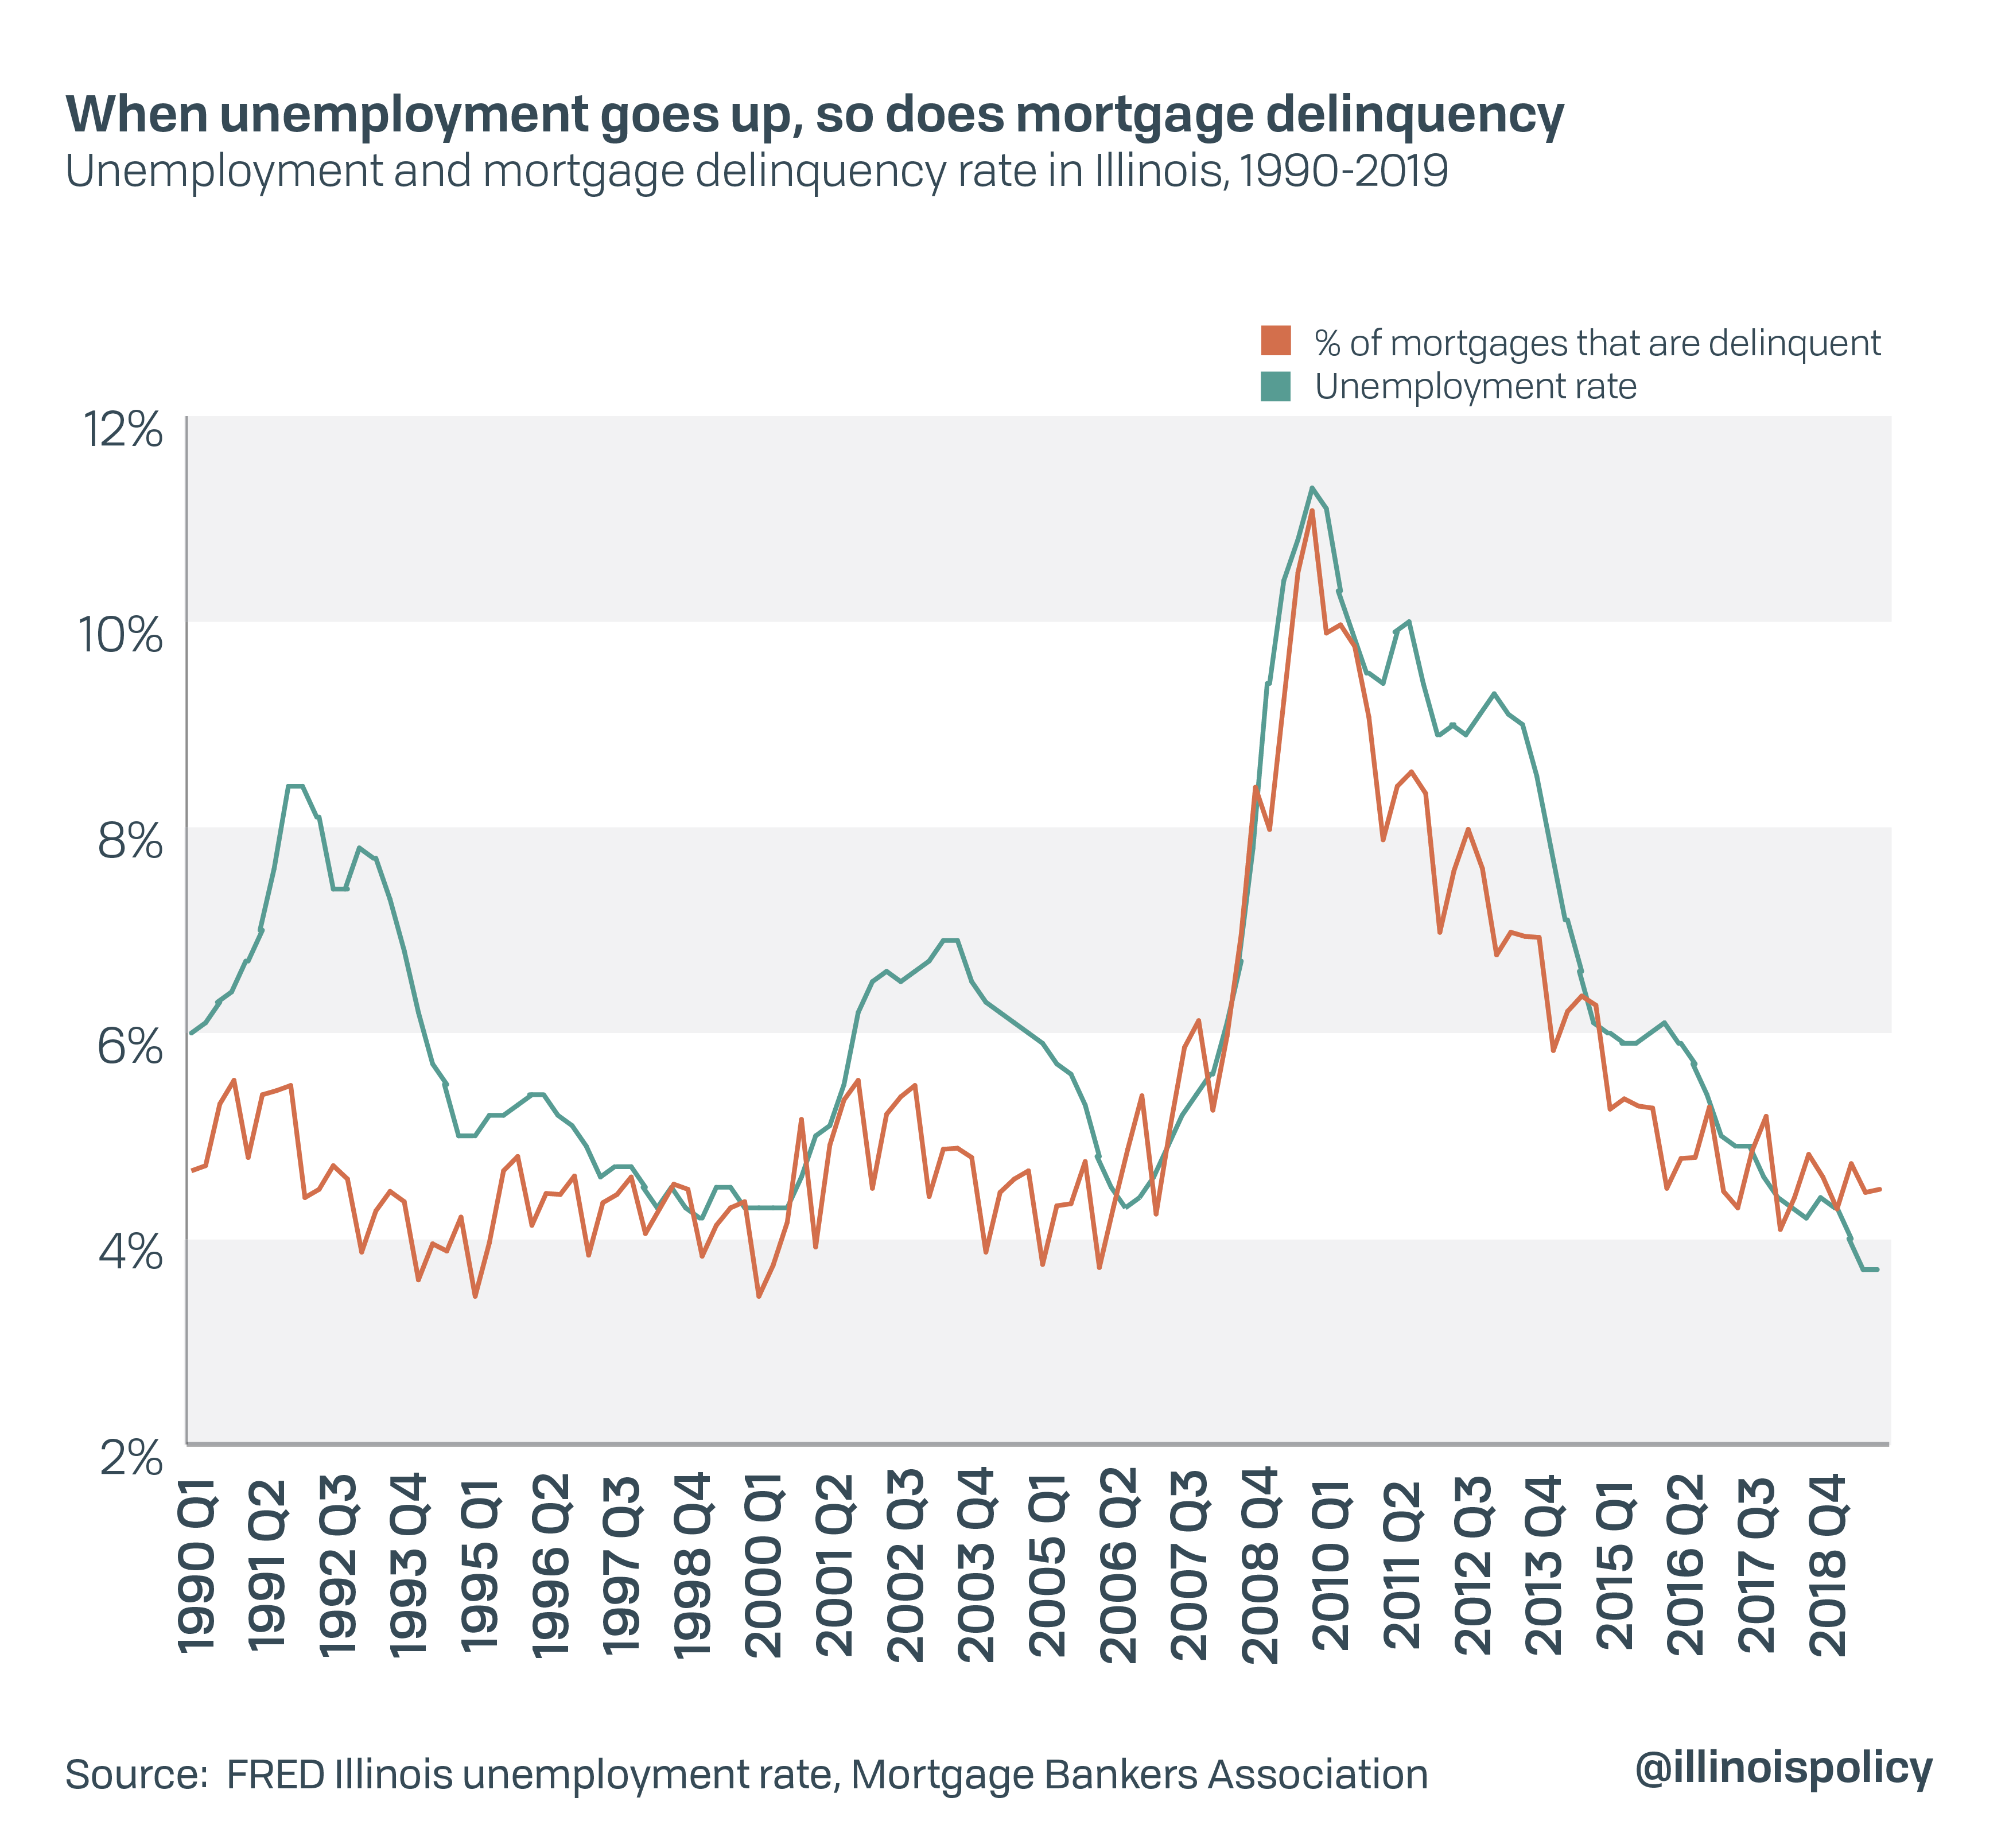 When unemployment goes up, so does mortgage delinquency